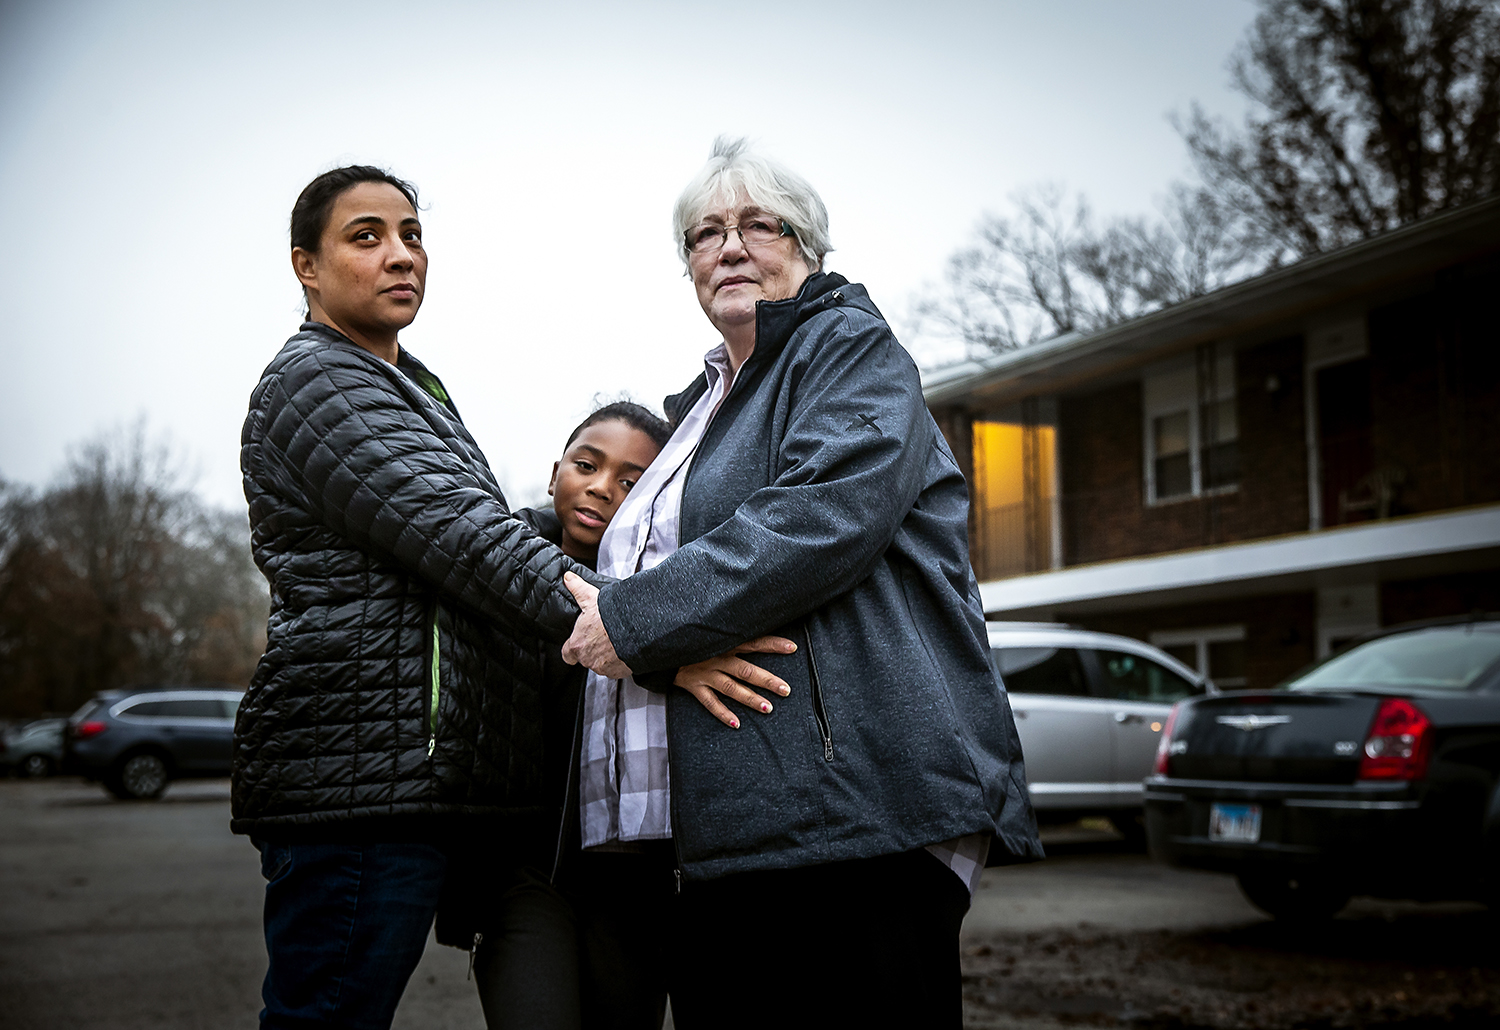 Tiffani Bailey, left, her son Isaiah Barbour Smith, center, and her mother, Diana Denning, right, held each other tightly as they survived the tornado that destroyed their home in Hewittville, an unincorporated village south of Taylorville, Ill. Their neighbor watched from a concrete shelter as the tornado picked up their home and sent in tumbling as it was destroyed. [Justin L. Fowler/The State Journal-Register]